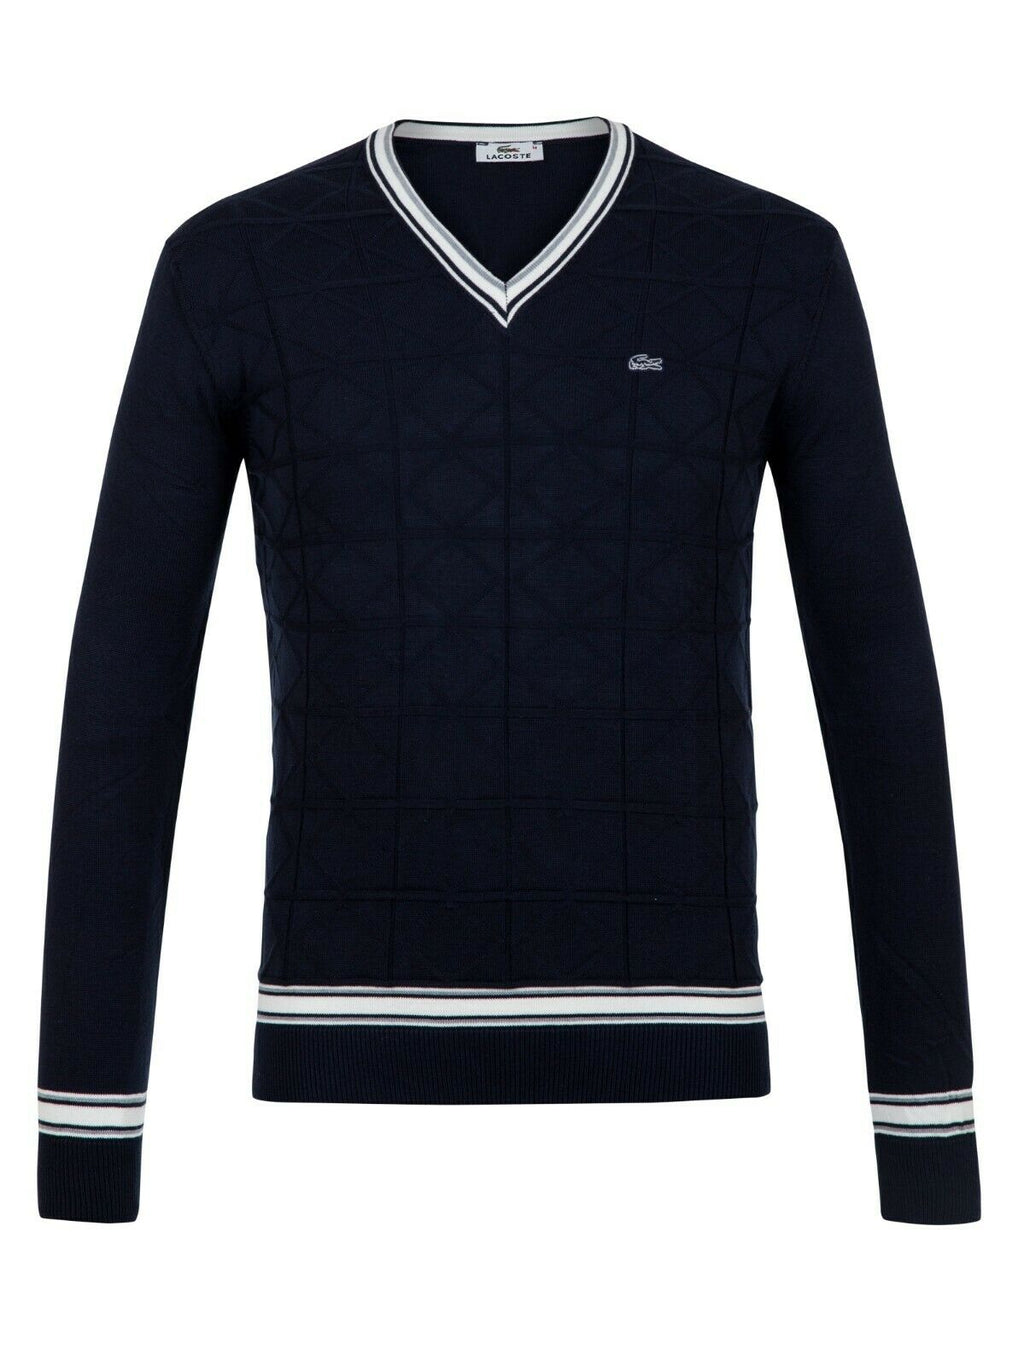 Lacoste Blue Sweater Jumper Pullover Material: Cotton